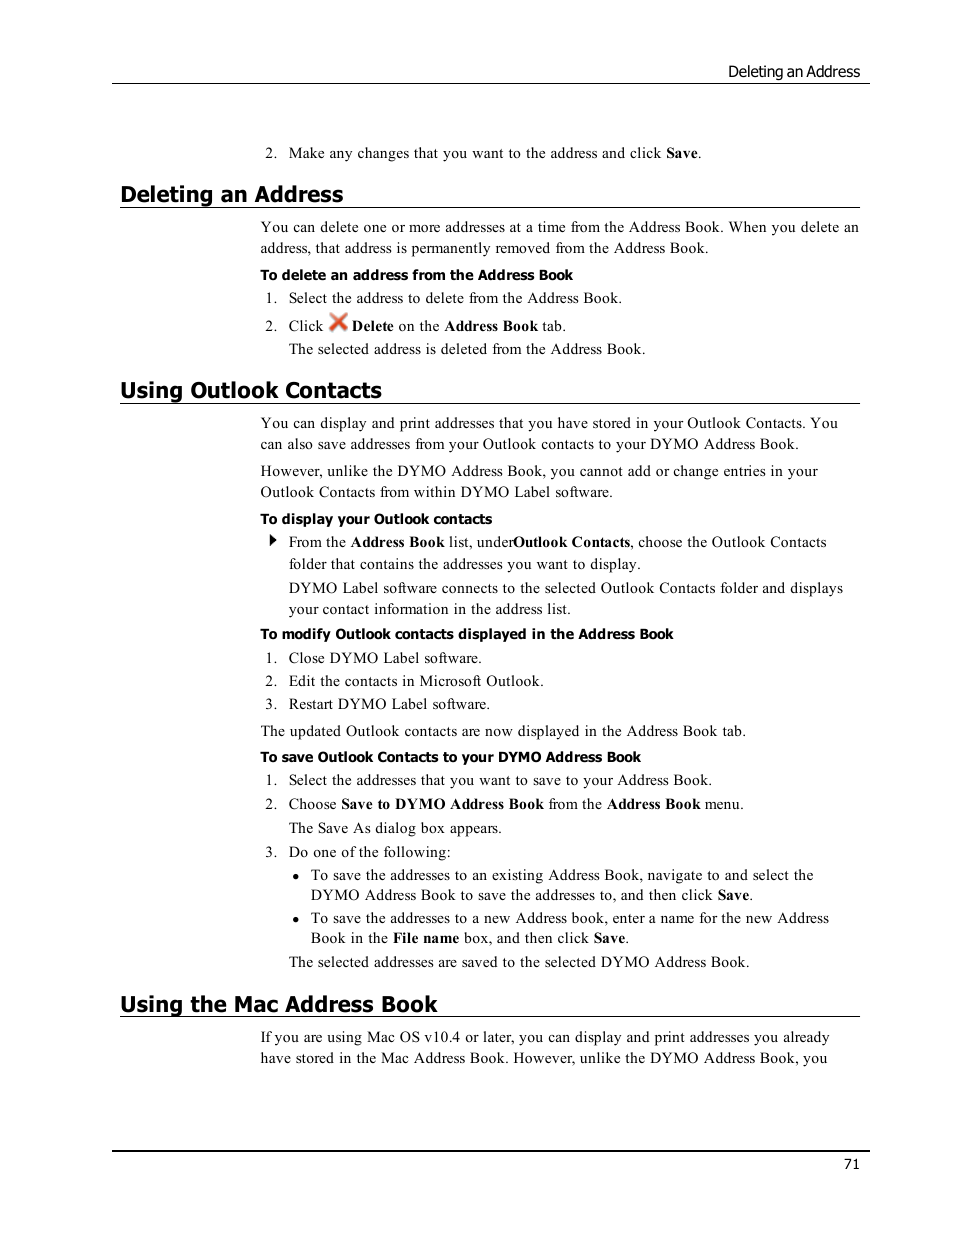 Deleting an address, Using outlook contacts, Using the mac